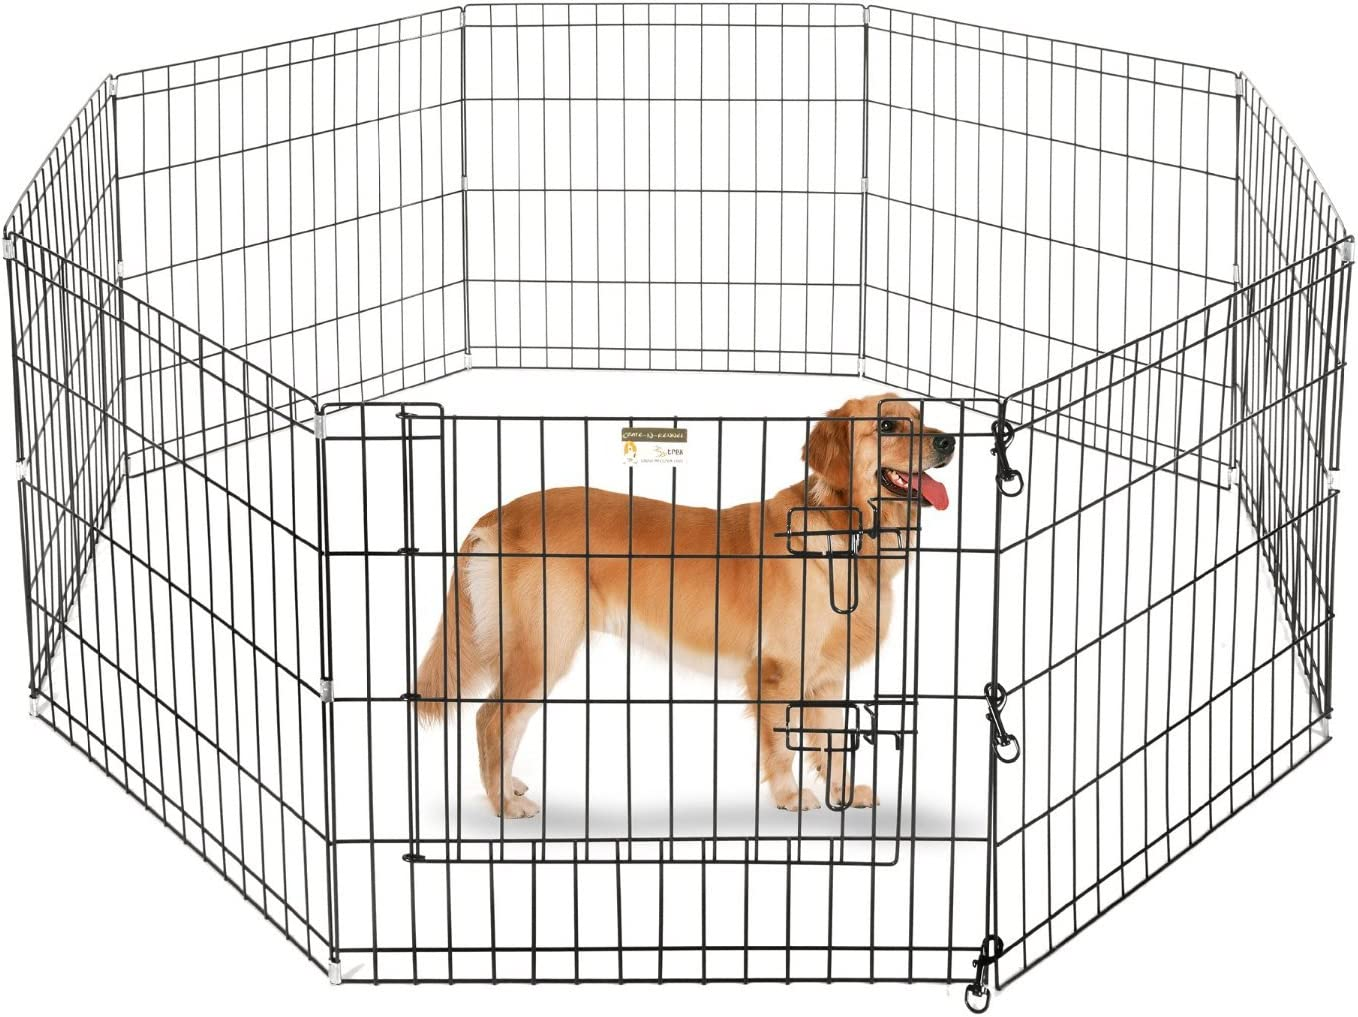 ALEKO SDK-36B Heavy Duty Pet Playpen Dog Kennel Pen Exercise Cage Fence 8 Panel 24 x 36 Inches Black